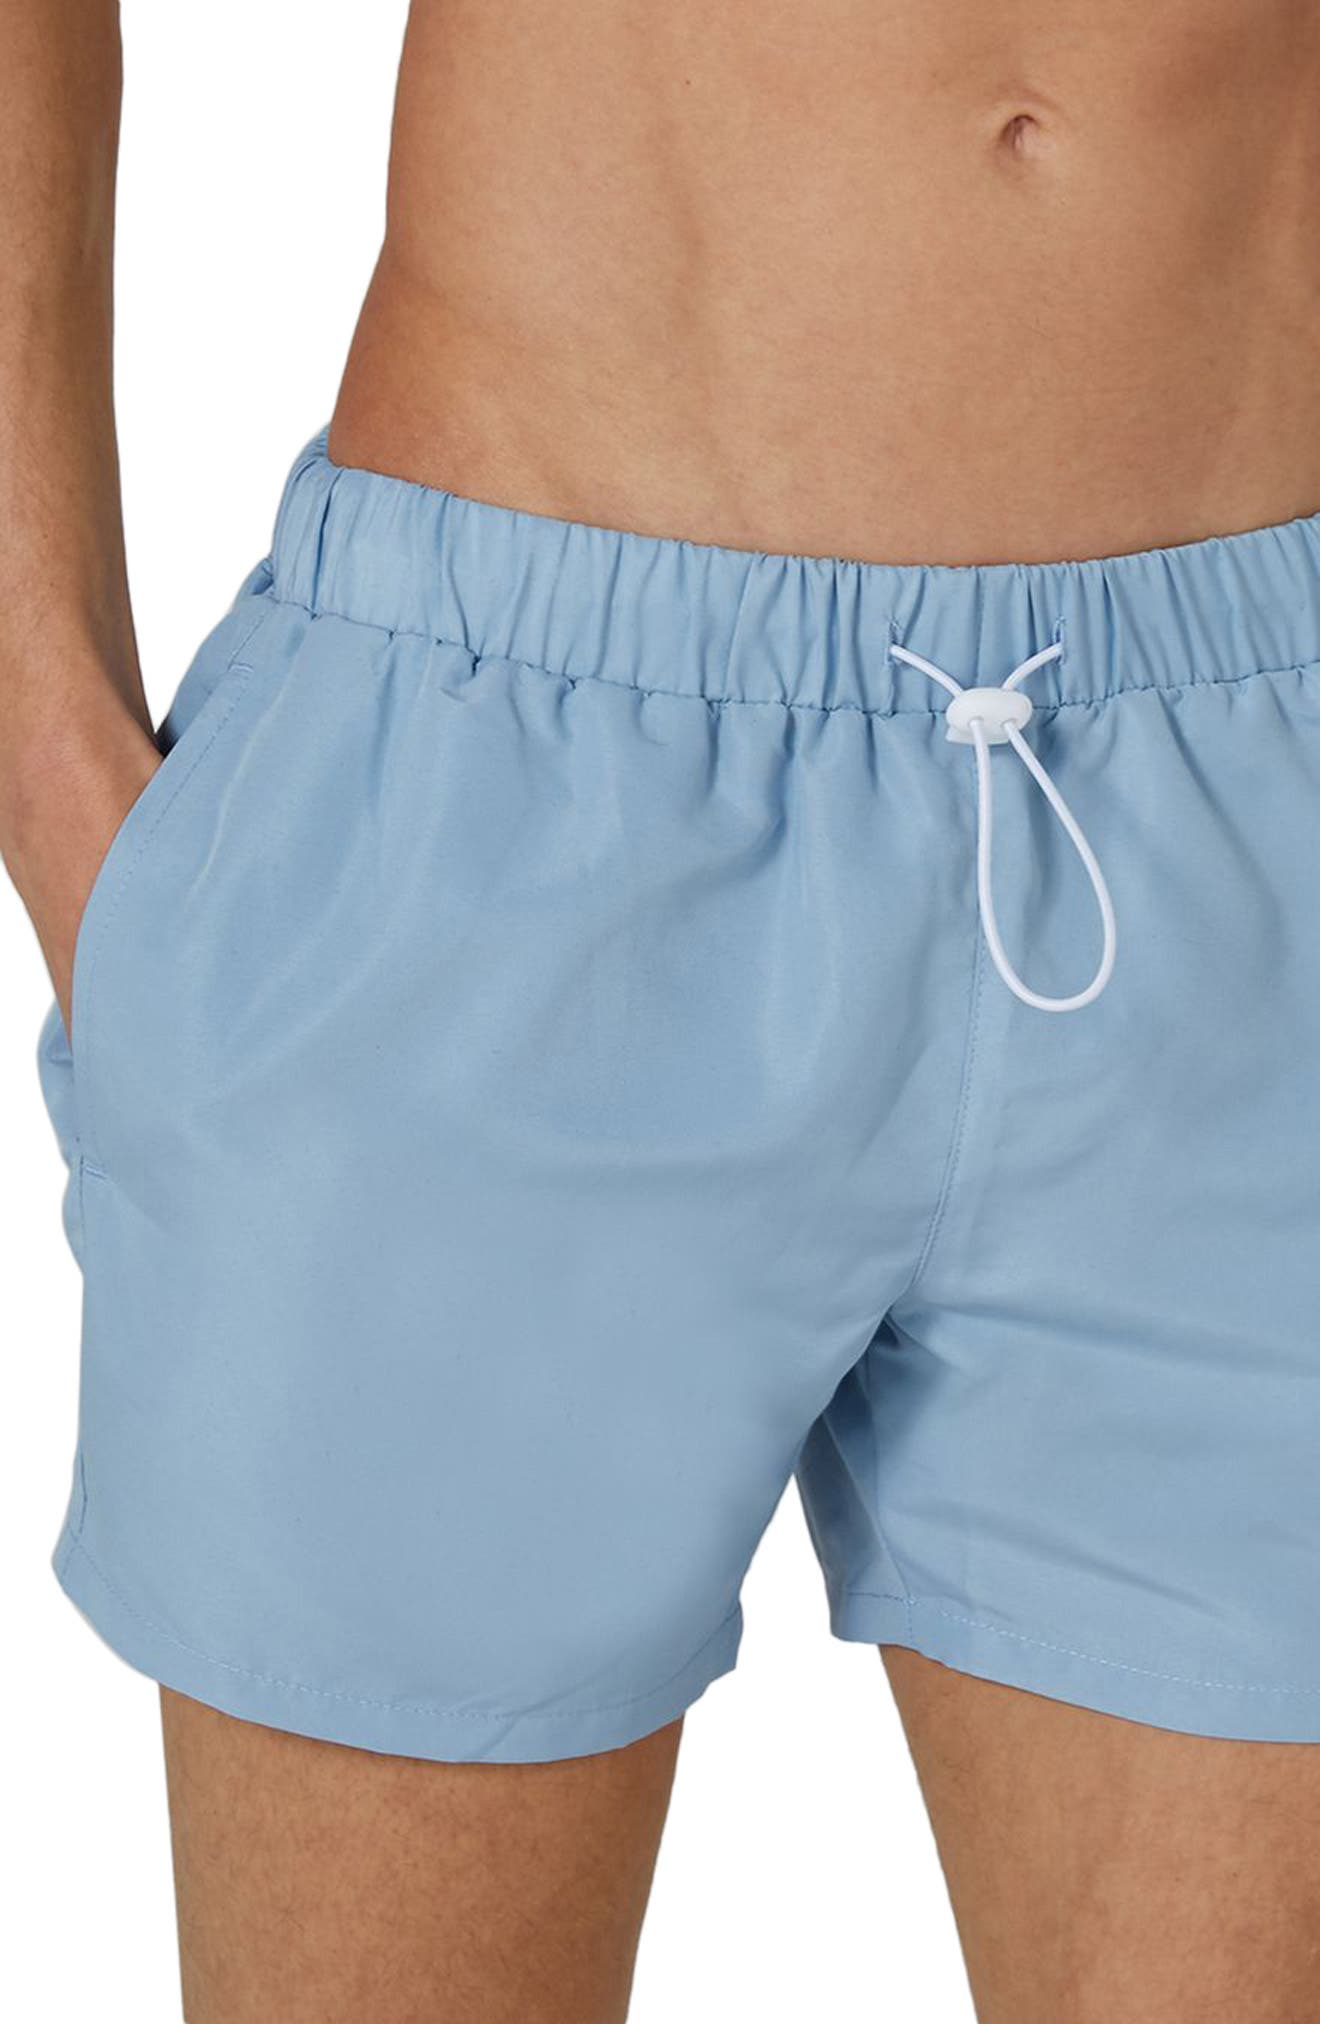 Neptune Swim Trunks,                             Alternate thumbnail 3, color,                             Mid Blue